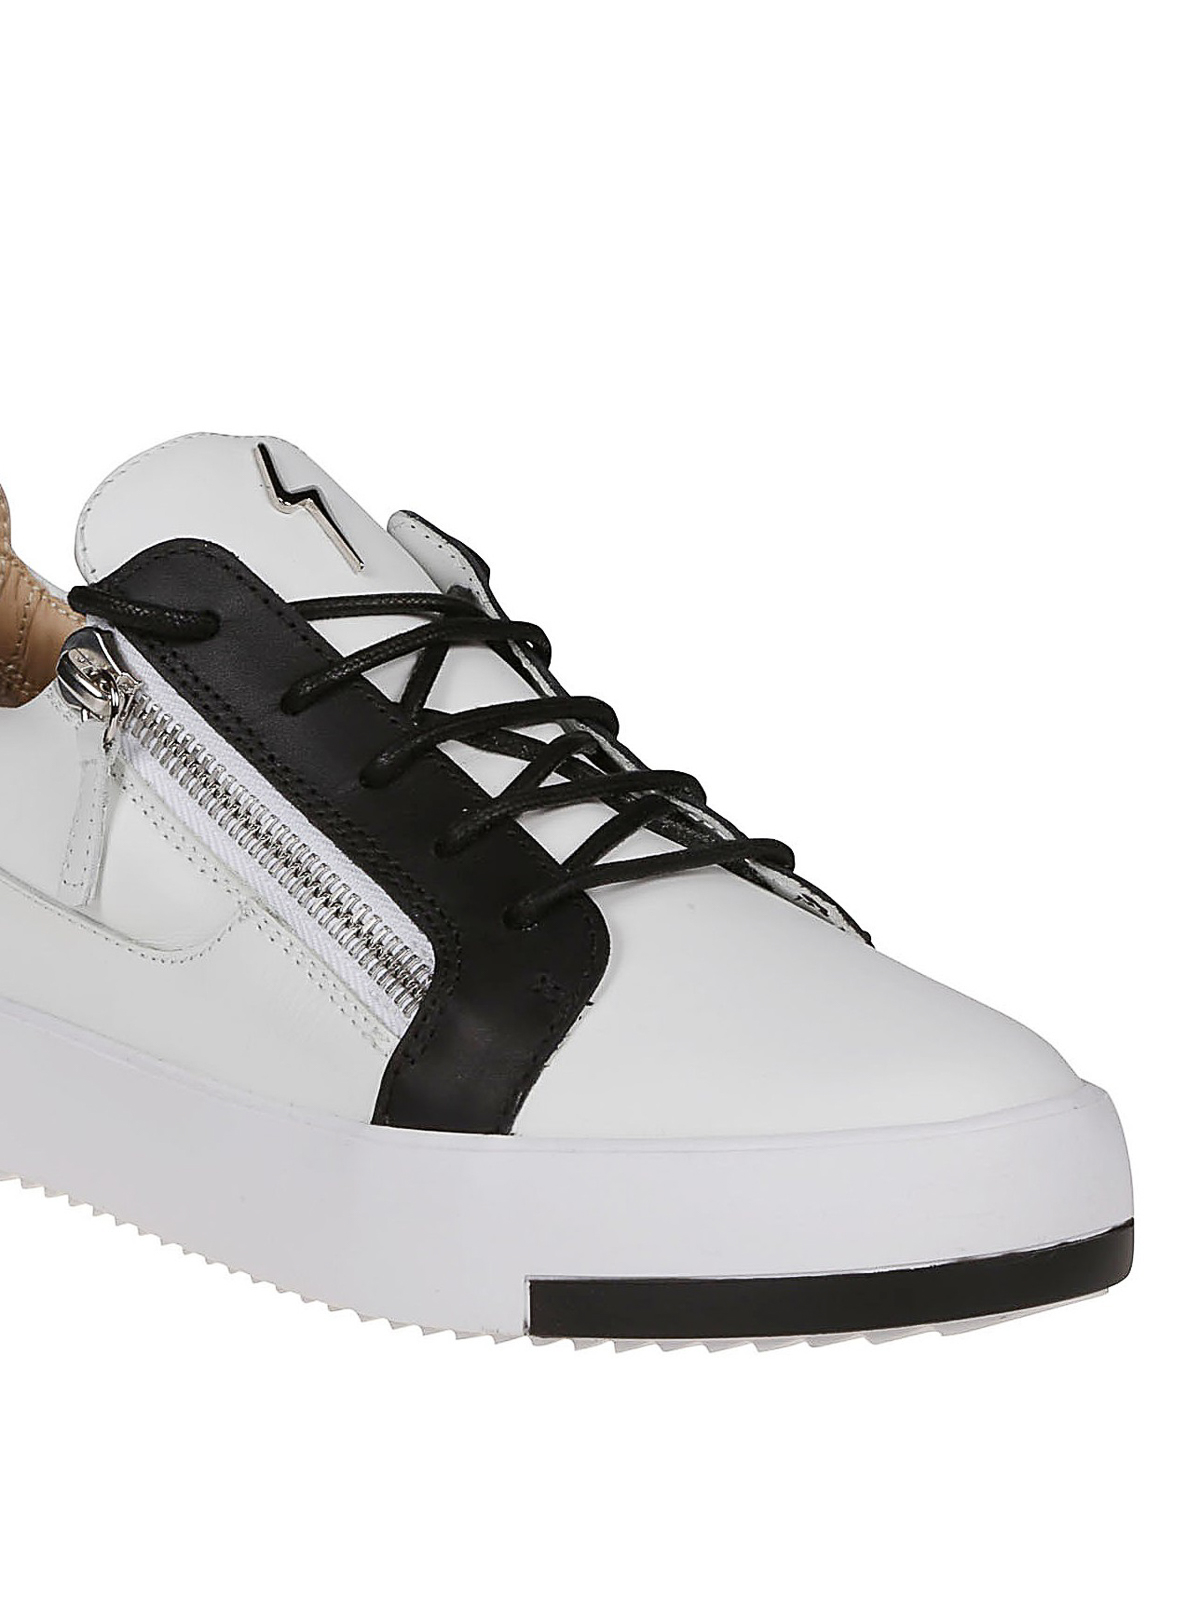 7aa13a4d188fb iKRIX GIUSEPPE ZANOTTI: trainers - Frankie colour block leather sneakers